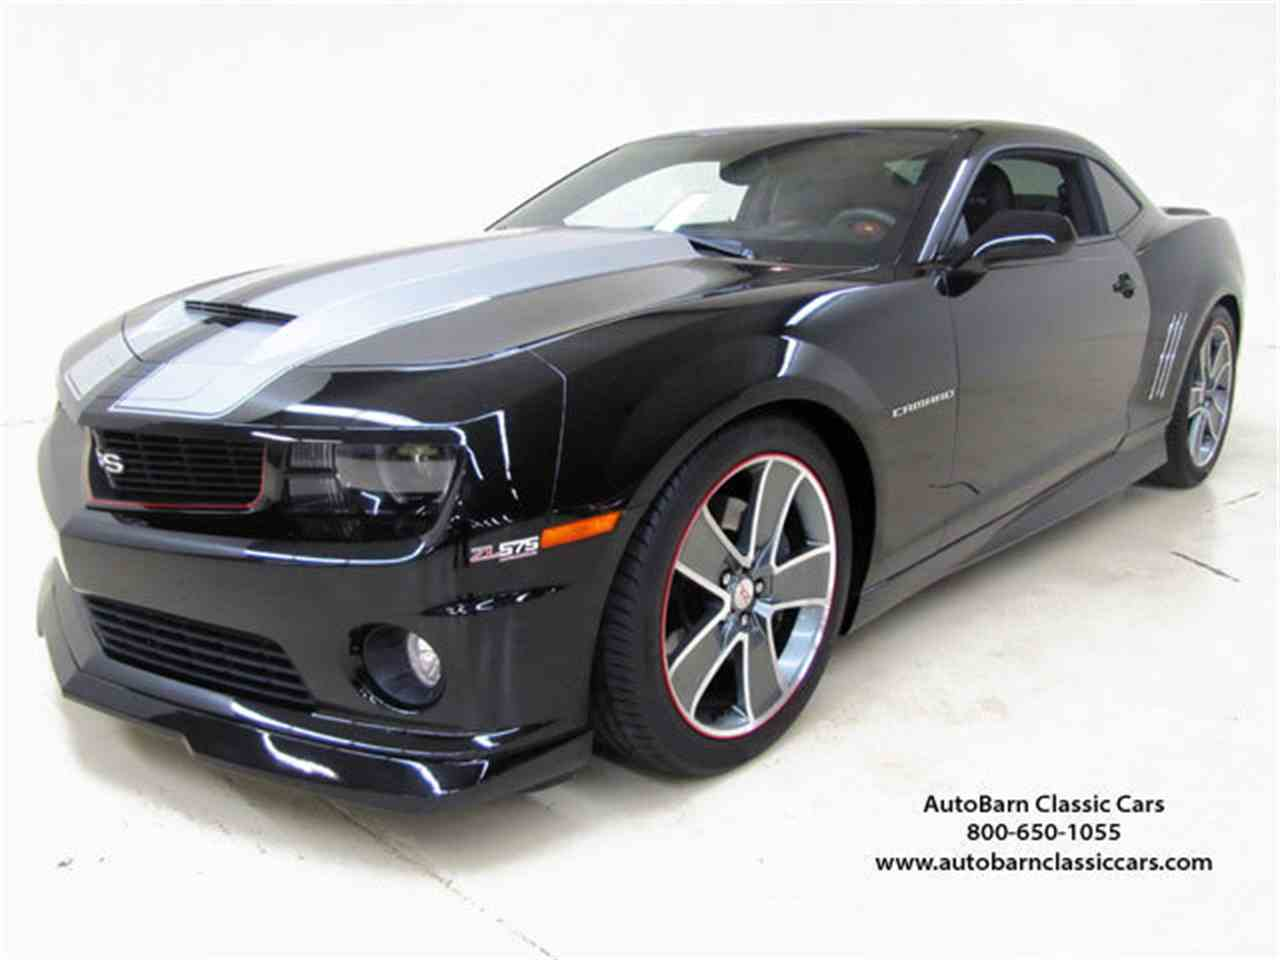 2010 Chevrolet Camaro Slp Zl 575 For Sale Classiccars